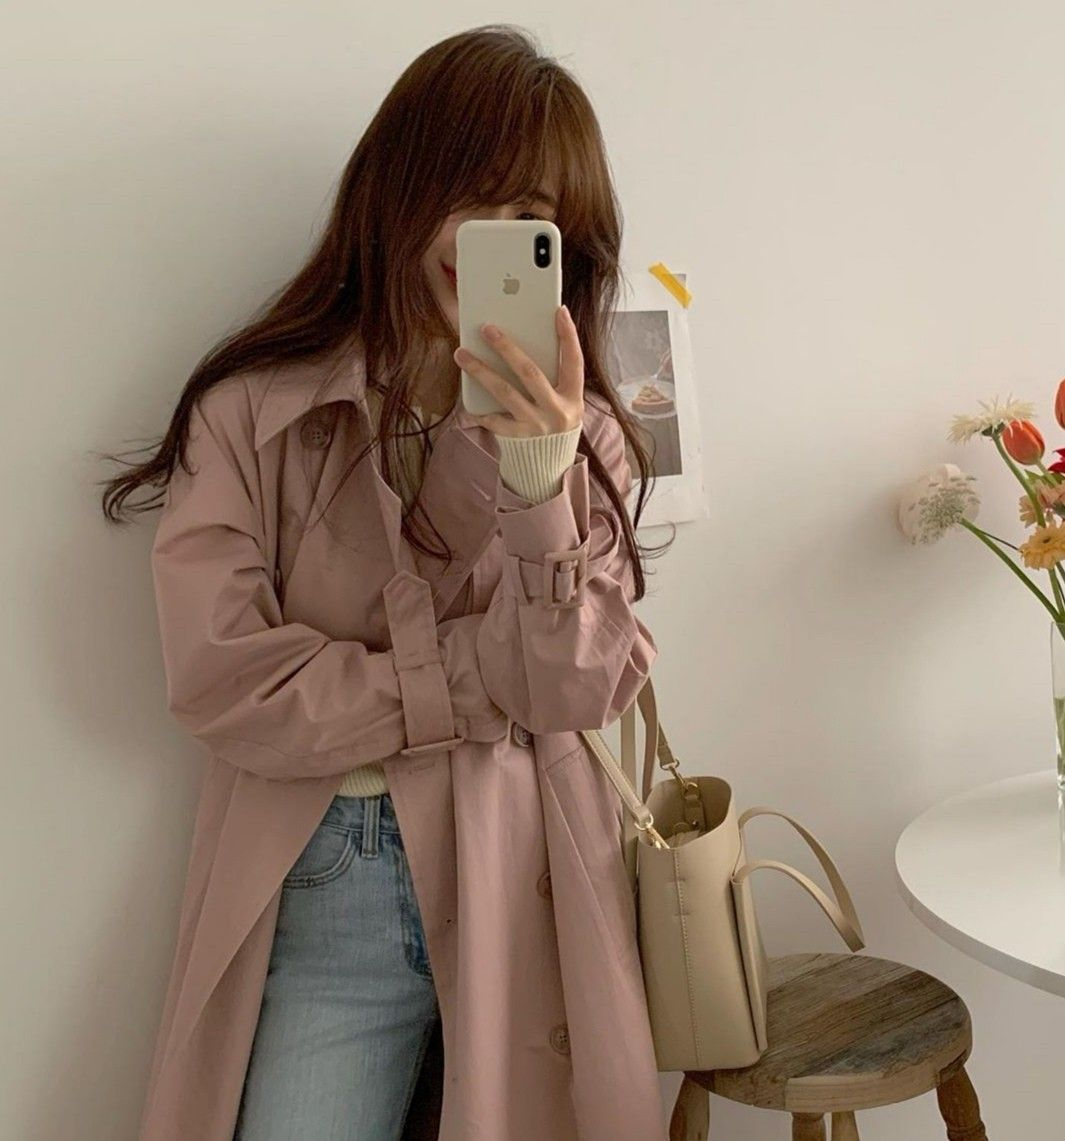 Korean K Fashion Aesthetic Outfits Minimal Minimalist